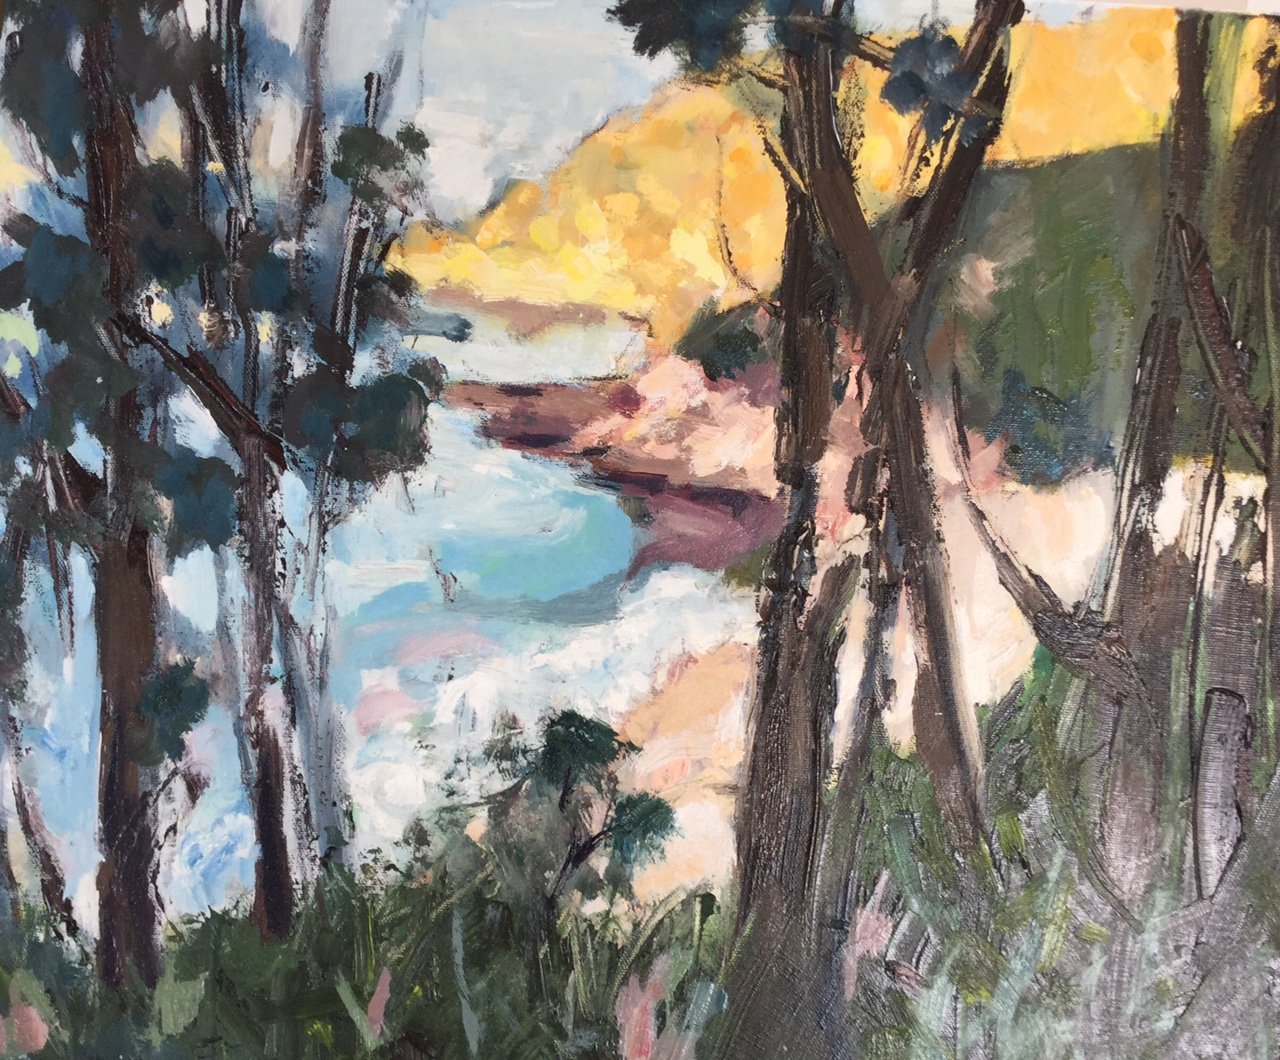 Australia, New South Wales. Sold